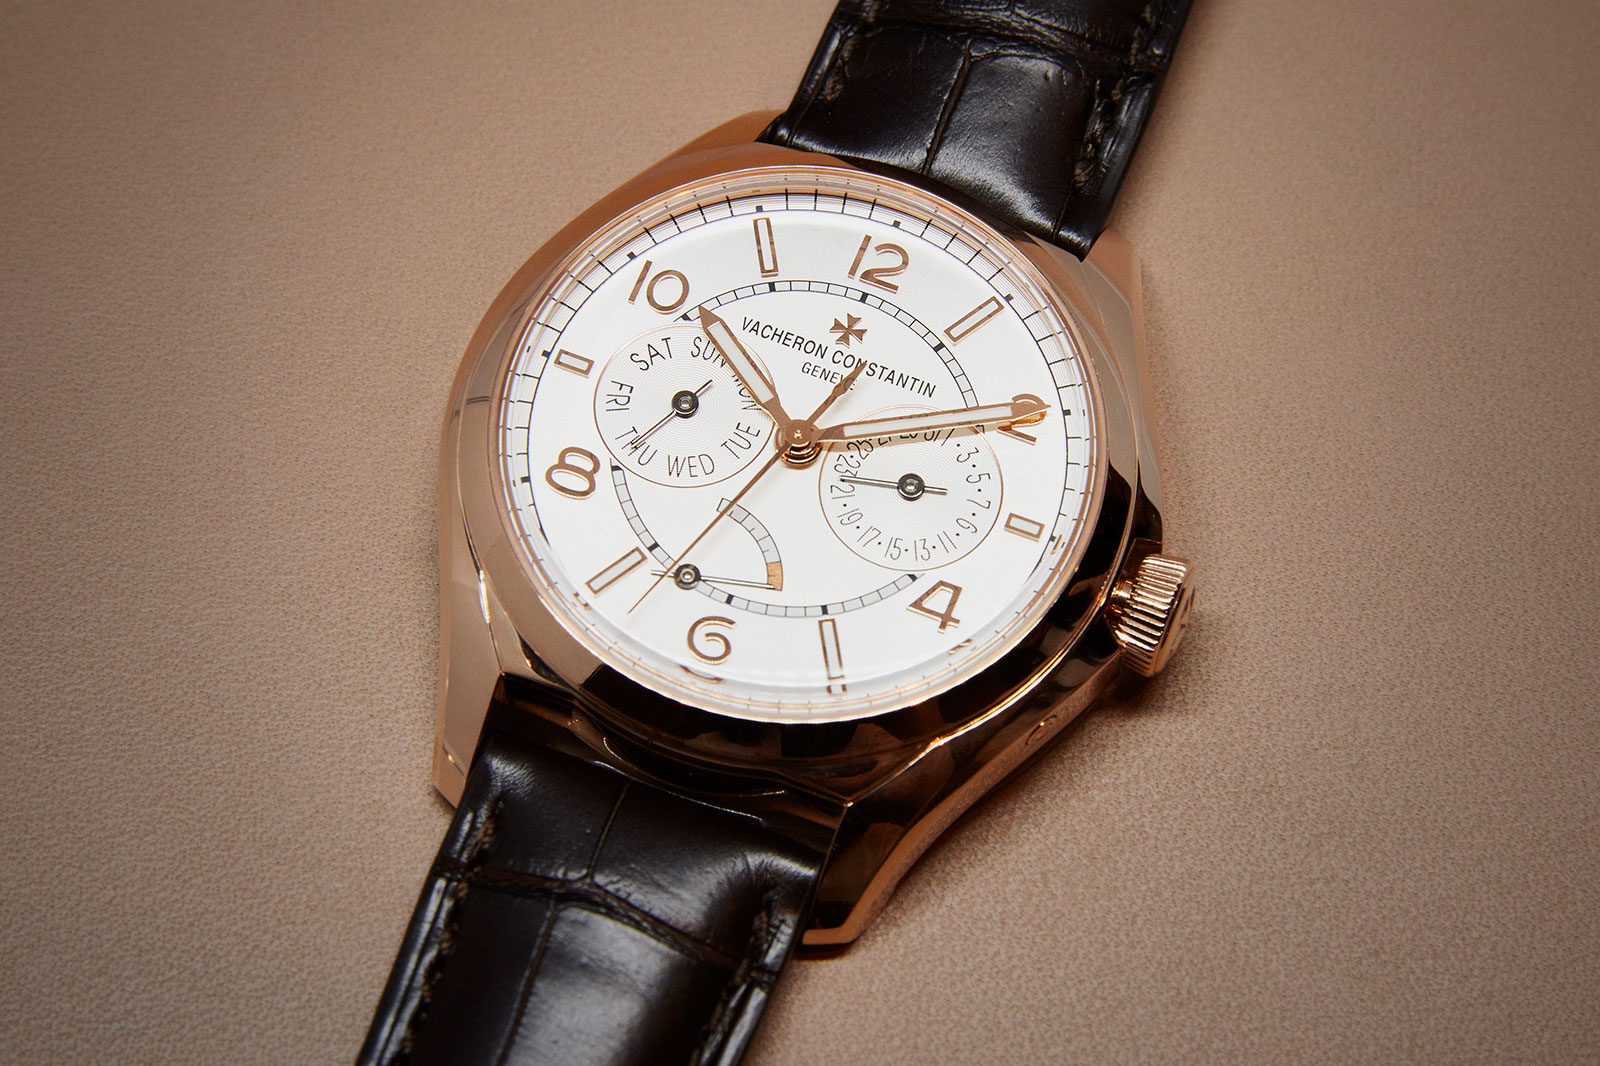 Vacheron Constantin Fiftysix day-date gold